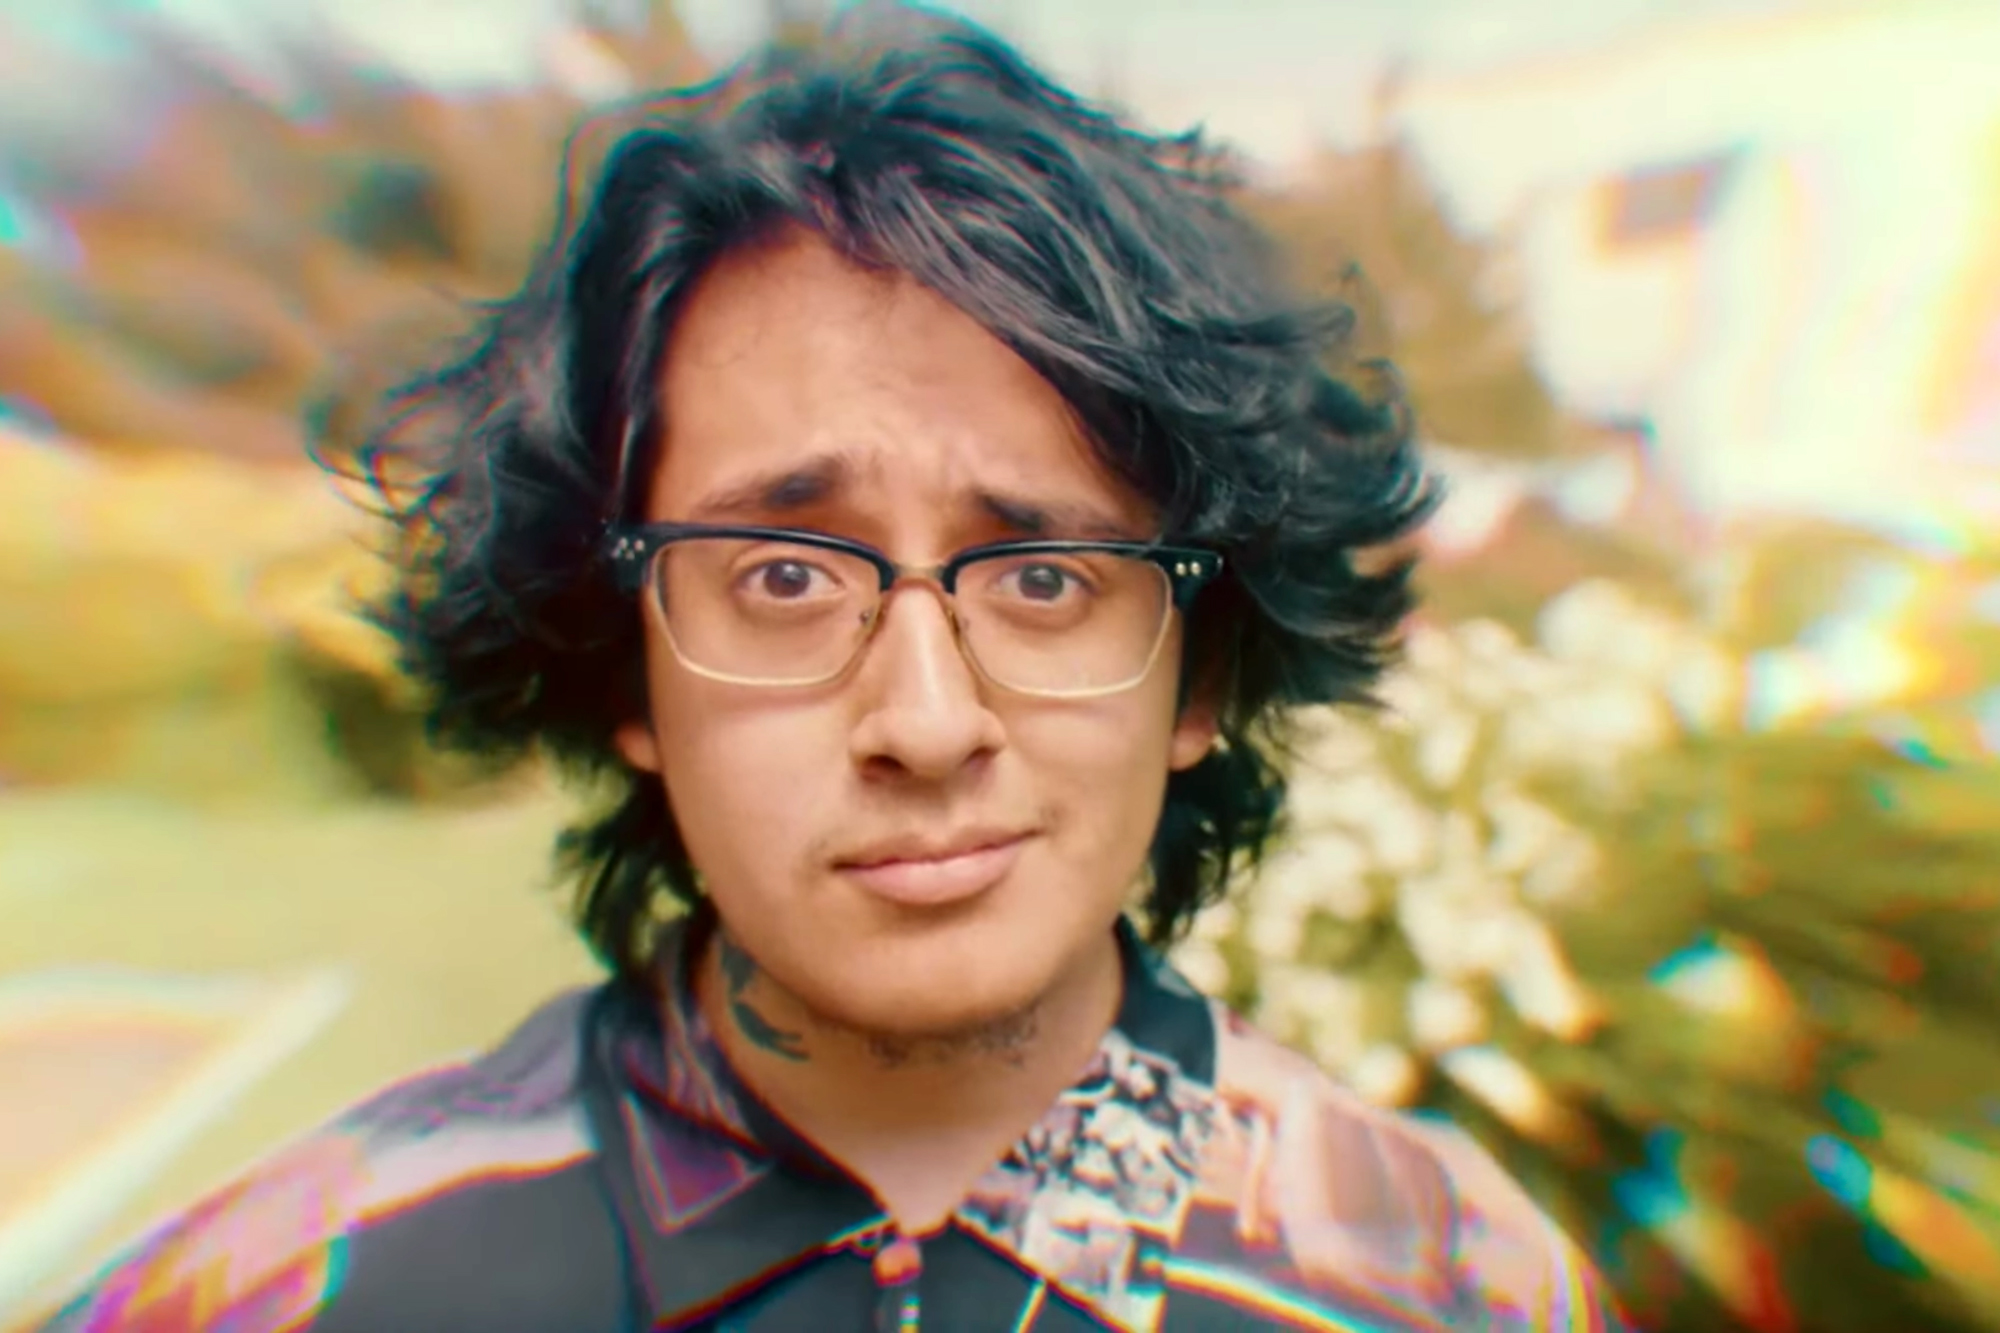 Cuco, Suscat0 Take One Hell of a Trip in 'Keeping Tabs' Video